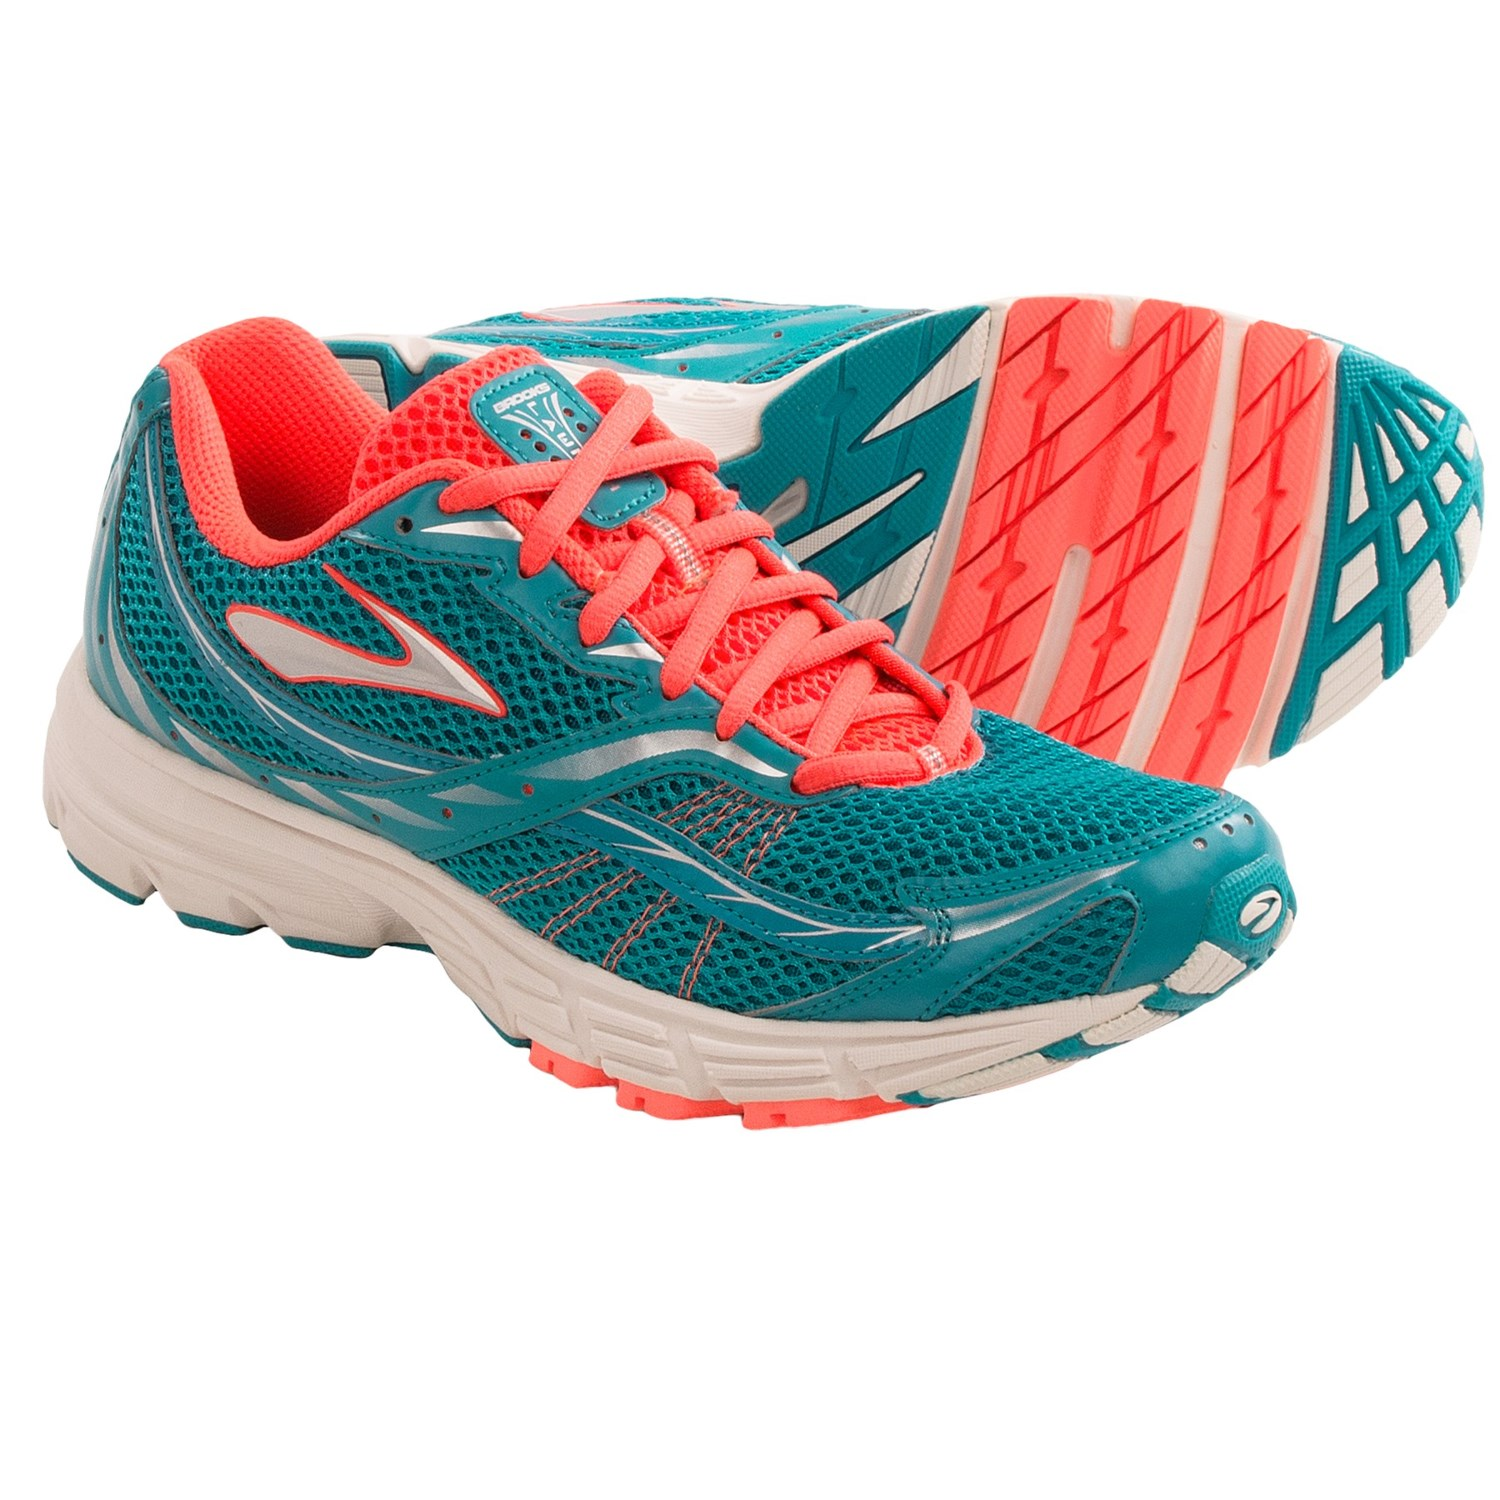 Designed for both men and women, these lightweight running shoes will get you in shape for your next marathon run. The mesh upper keeps your feet cool and